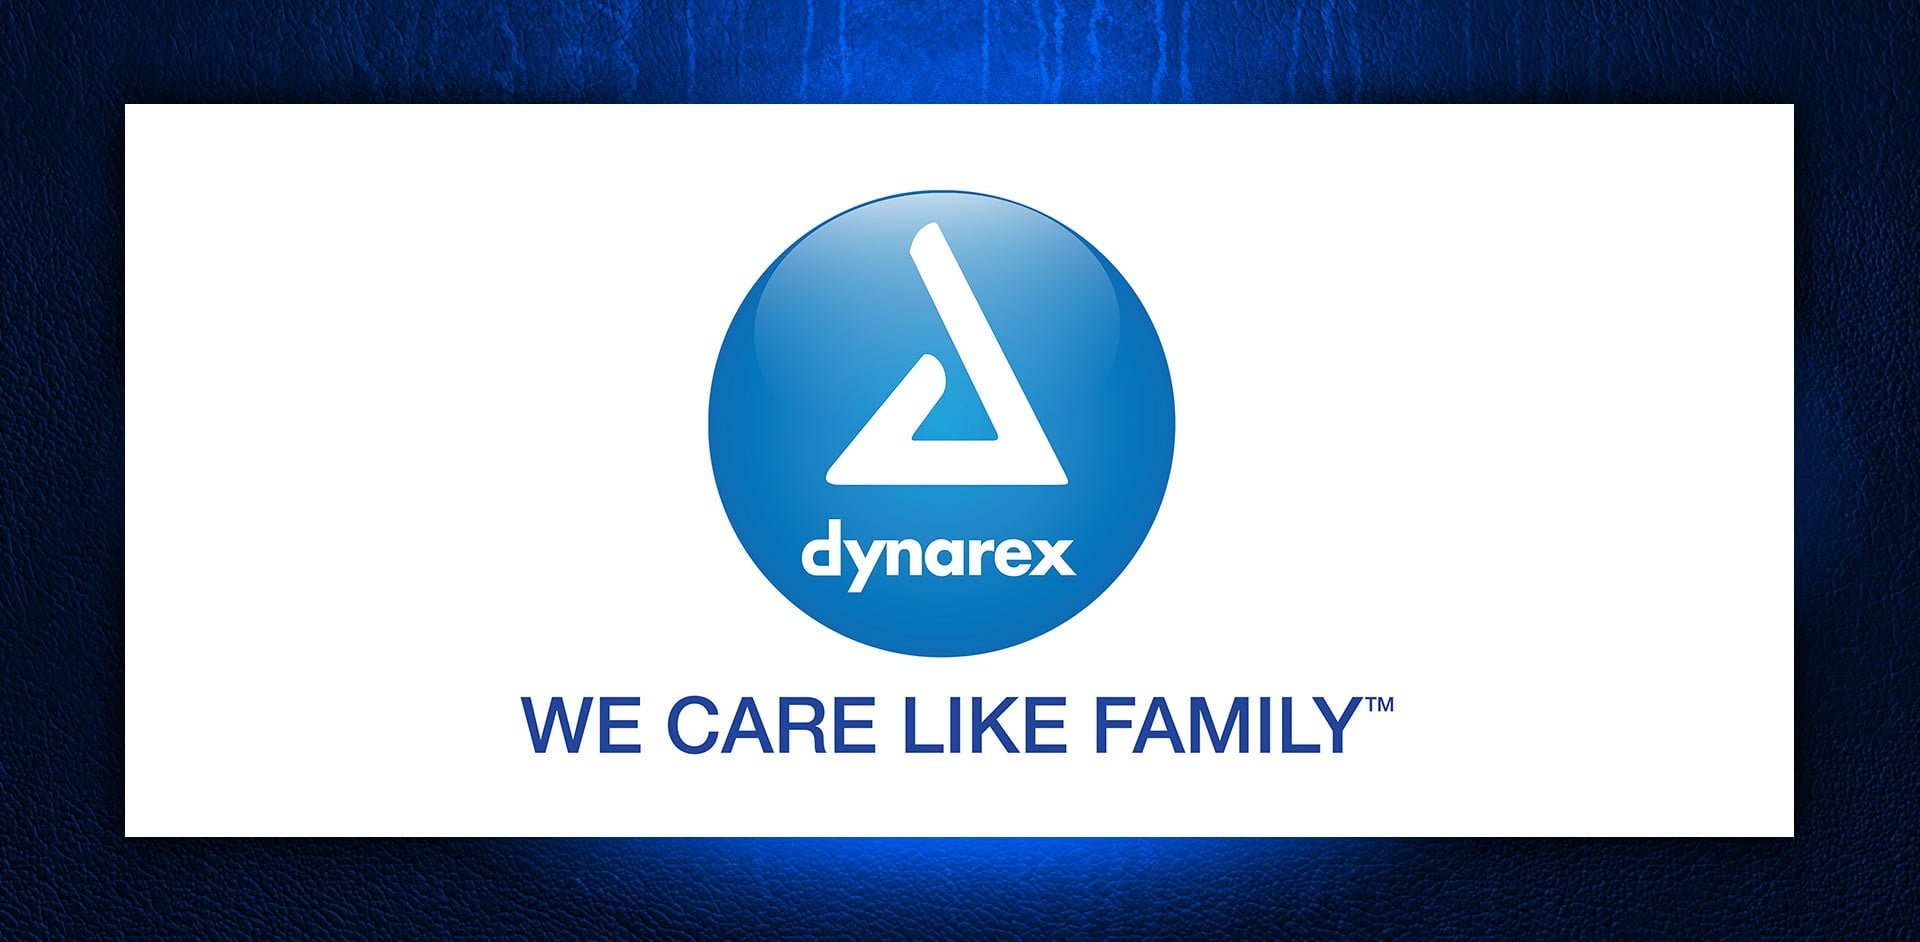 Dynarex Corporation